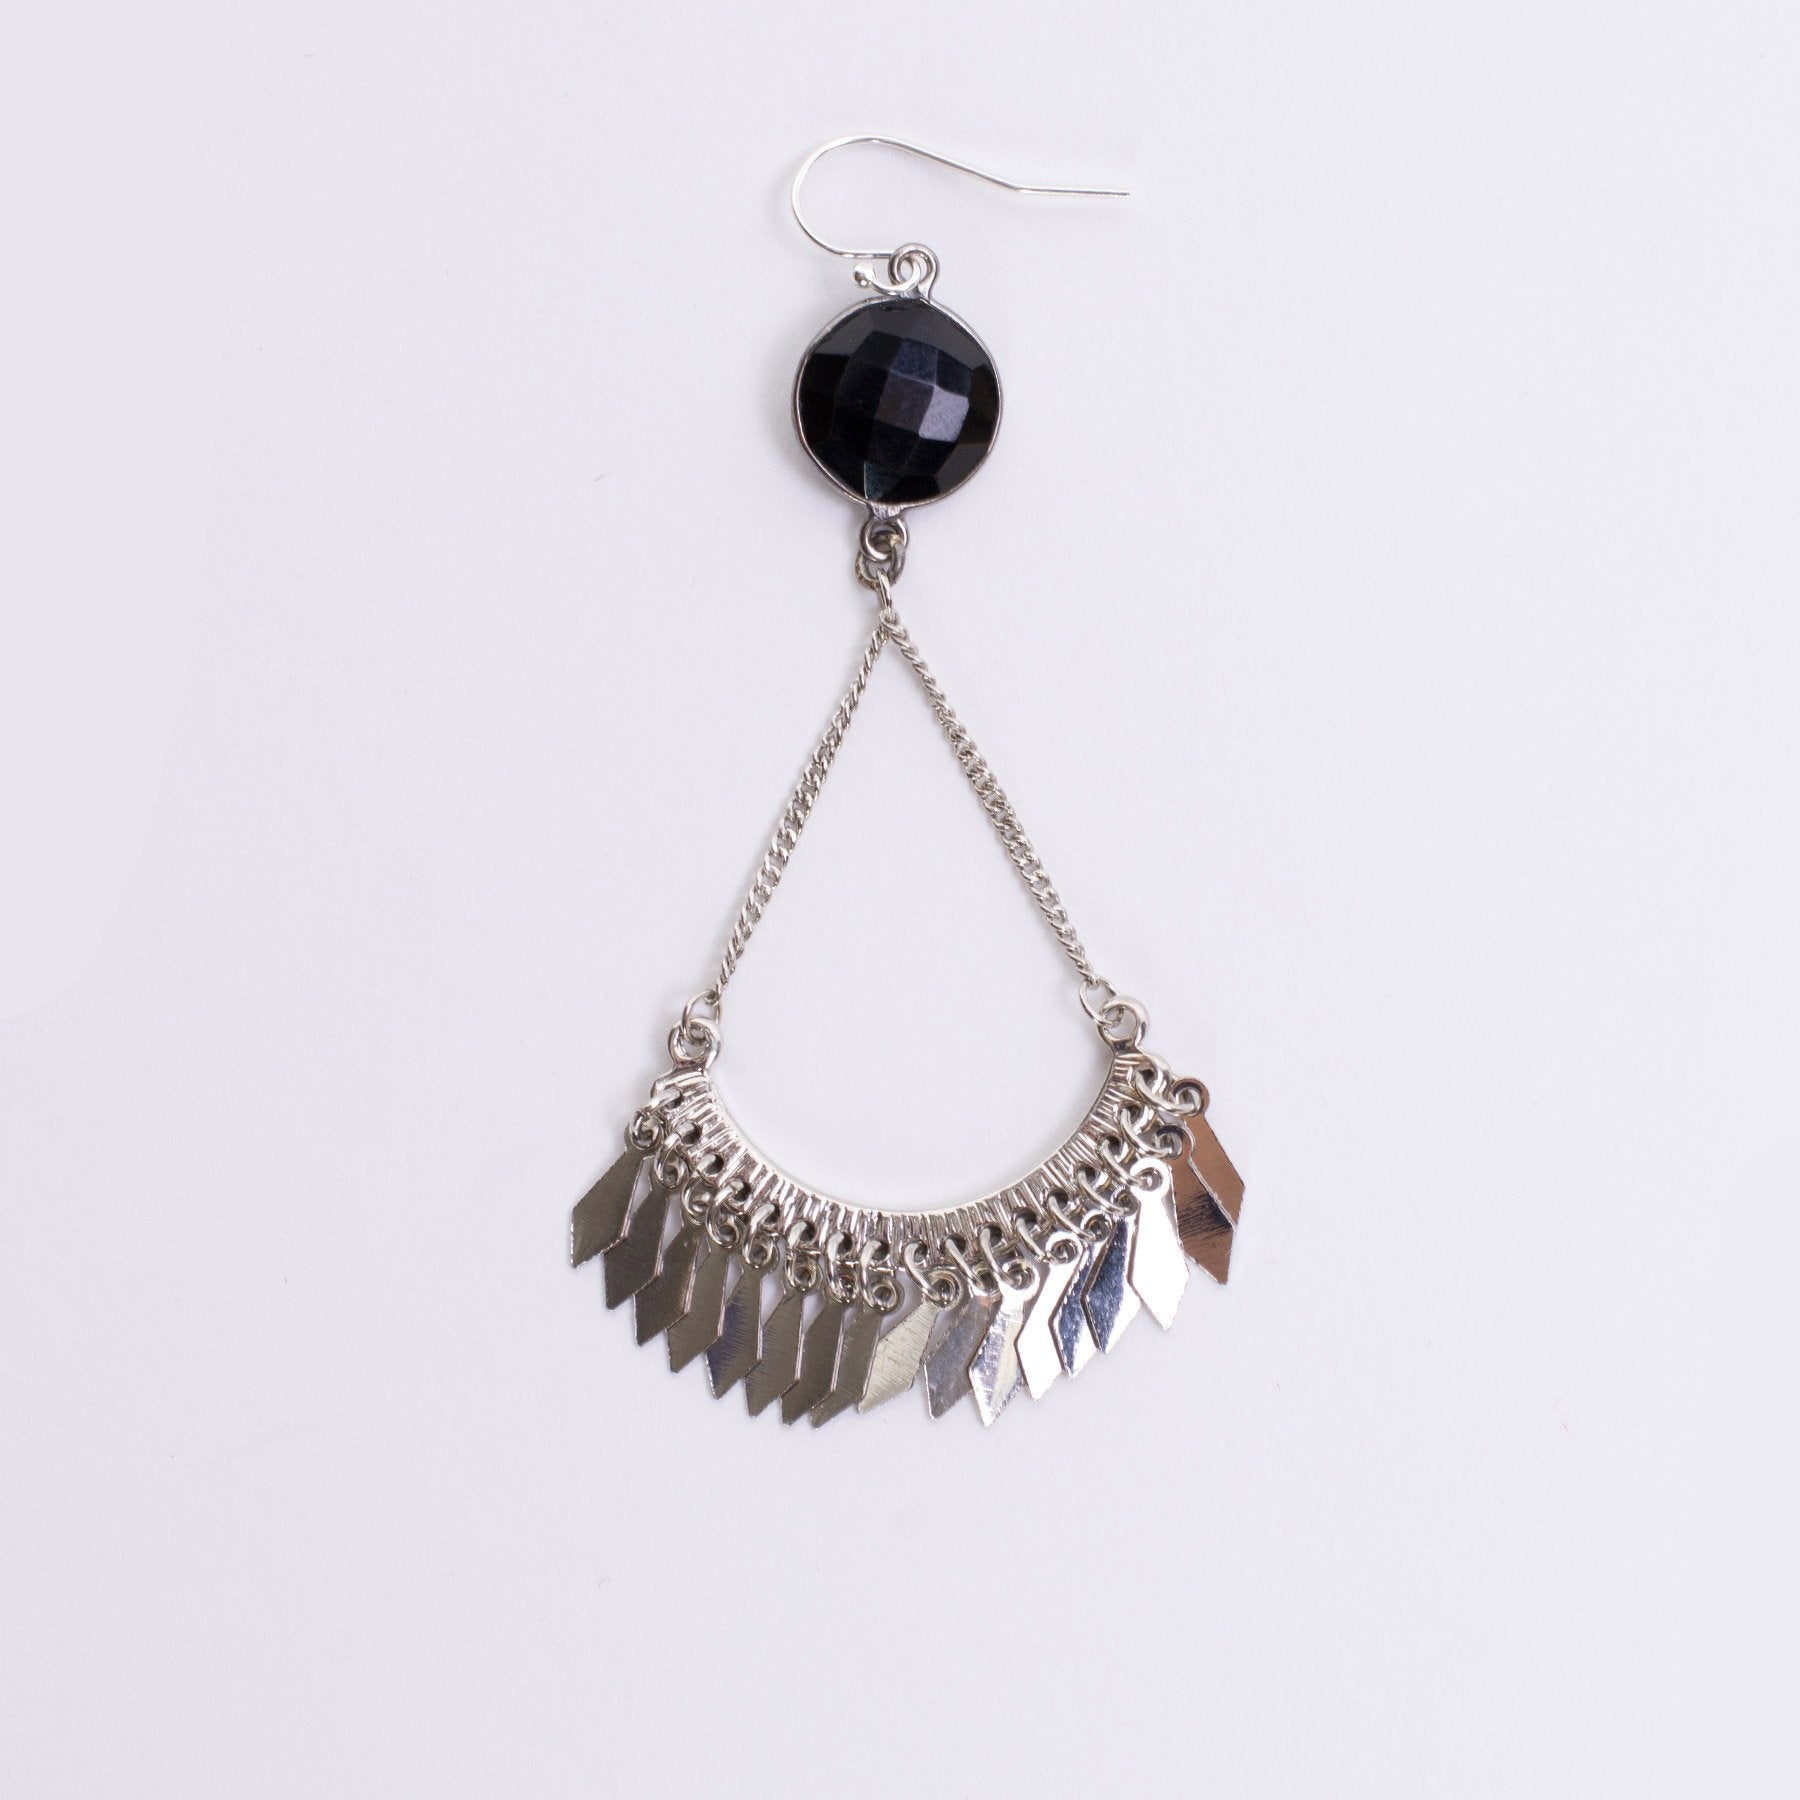 black modolo di drp blck cg dm errngs pear earrings shape ox pr slvr sterling two cage onyx drop silver